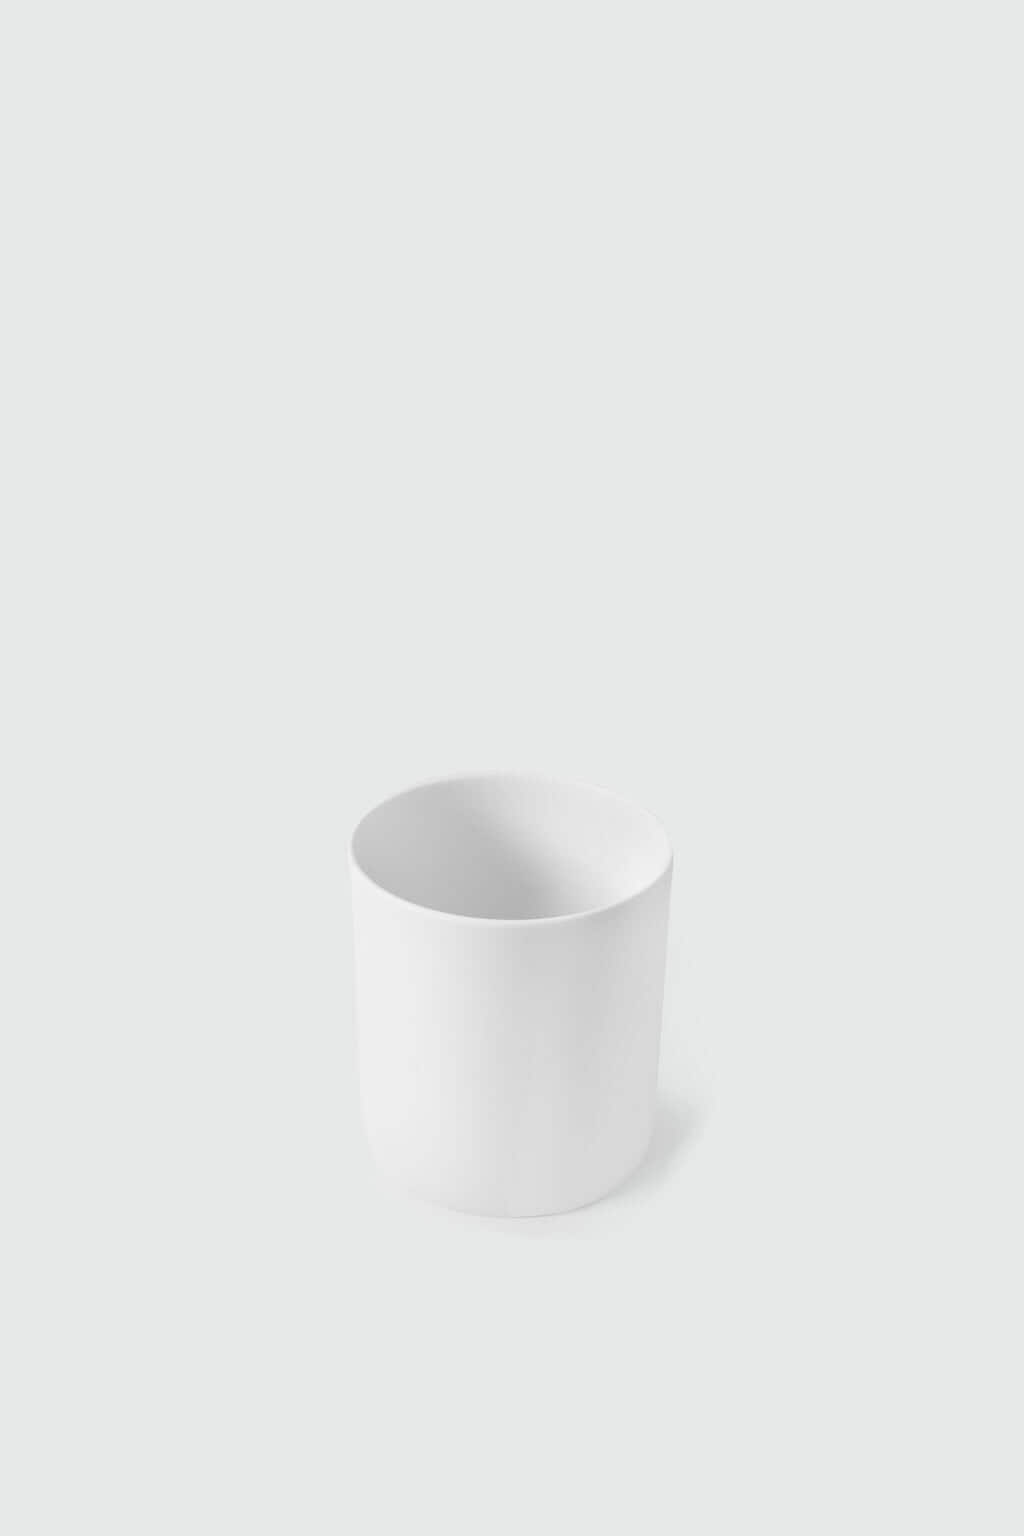 Wide Porcelain Cup 2940 White 3